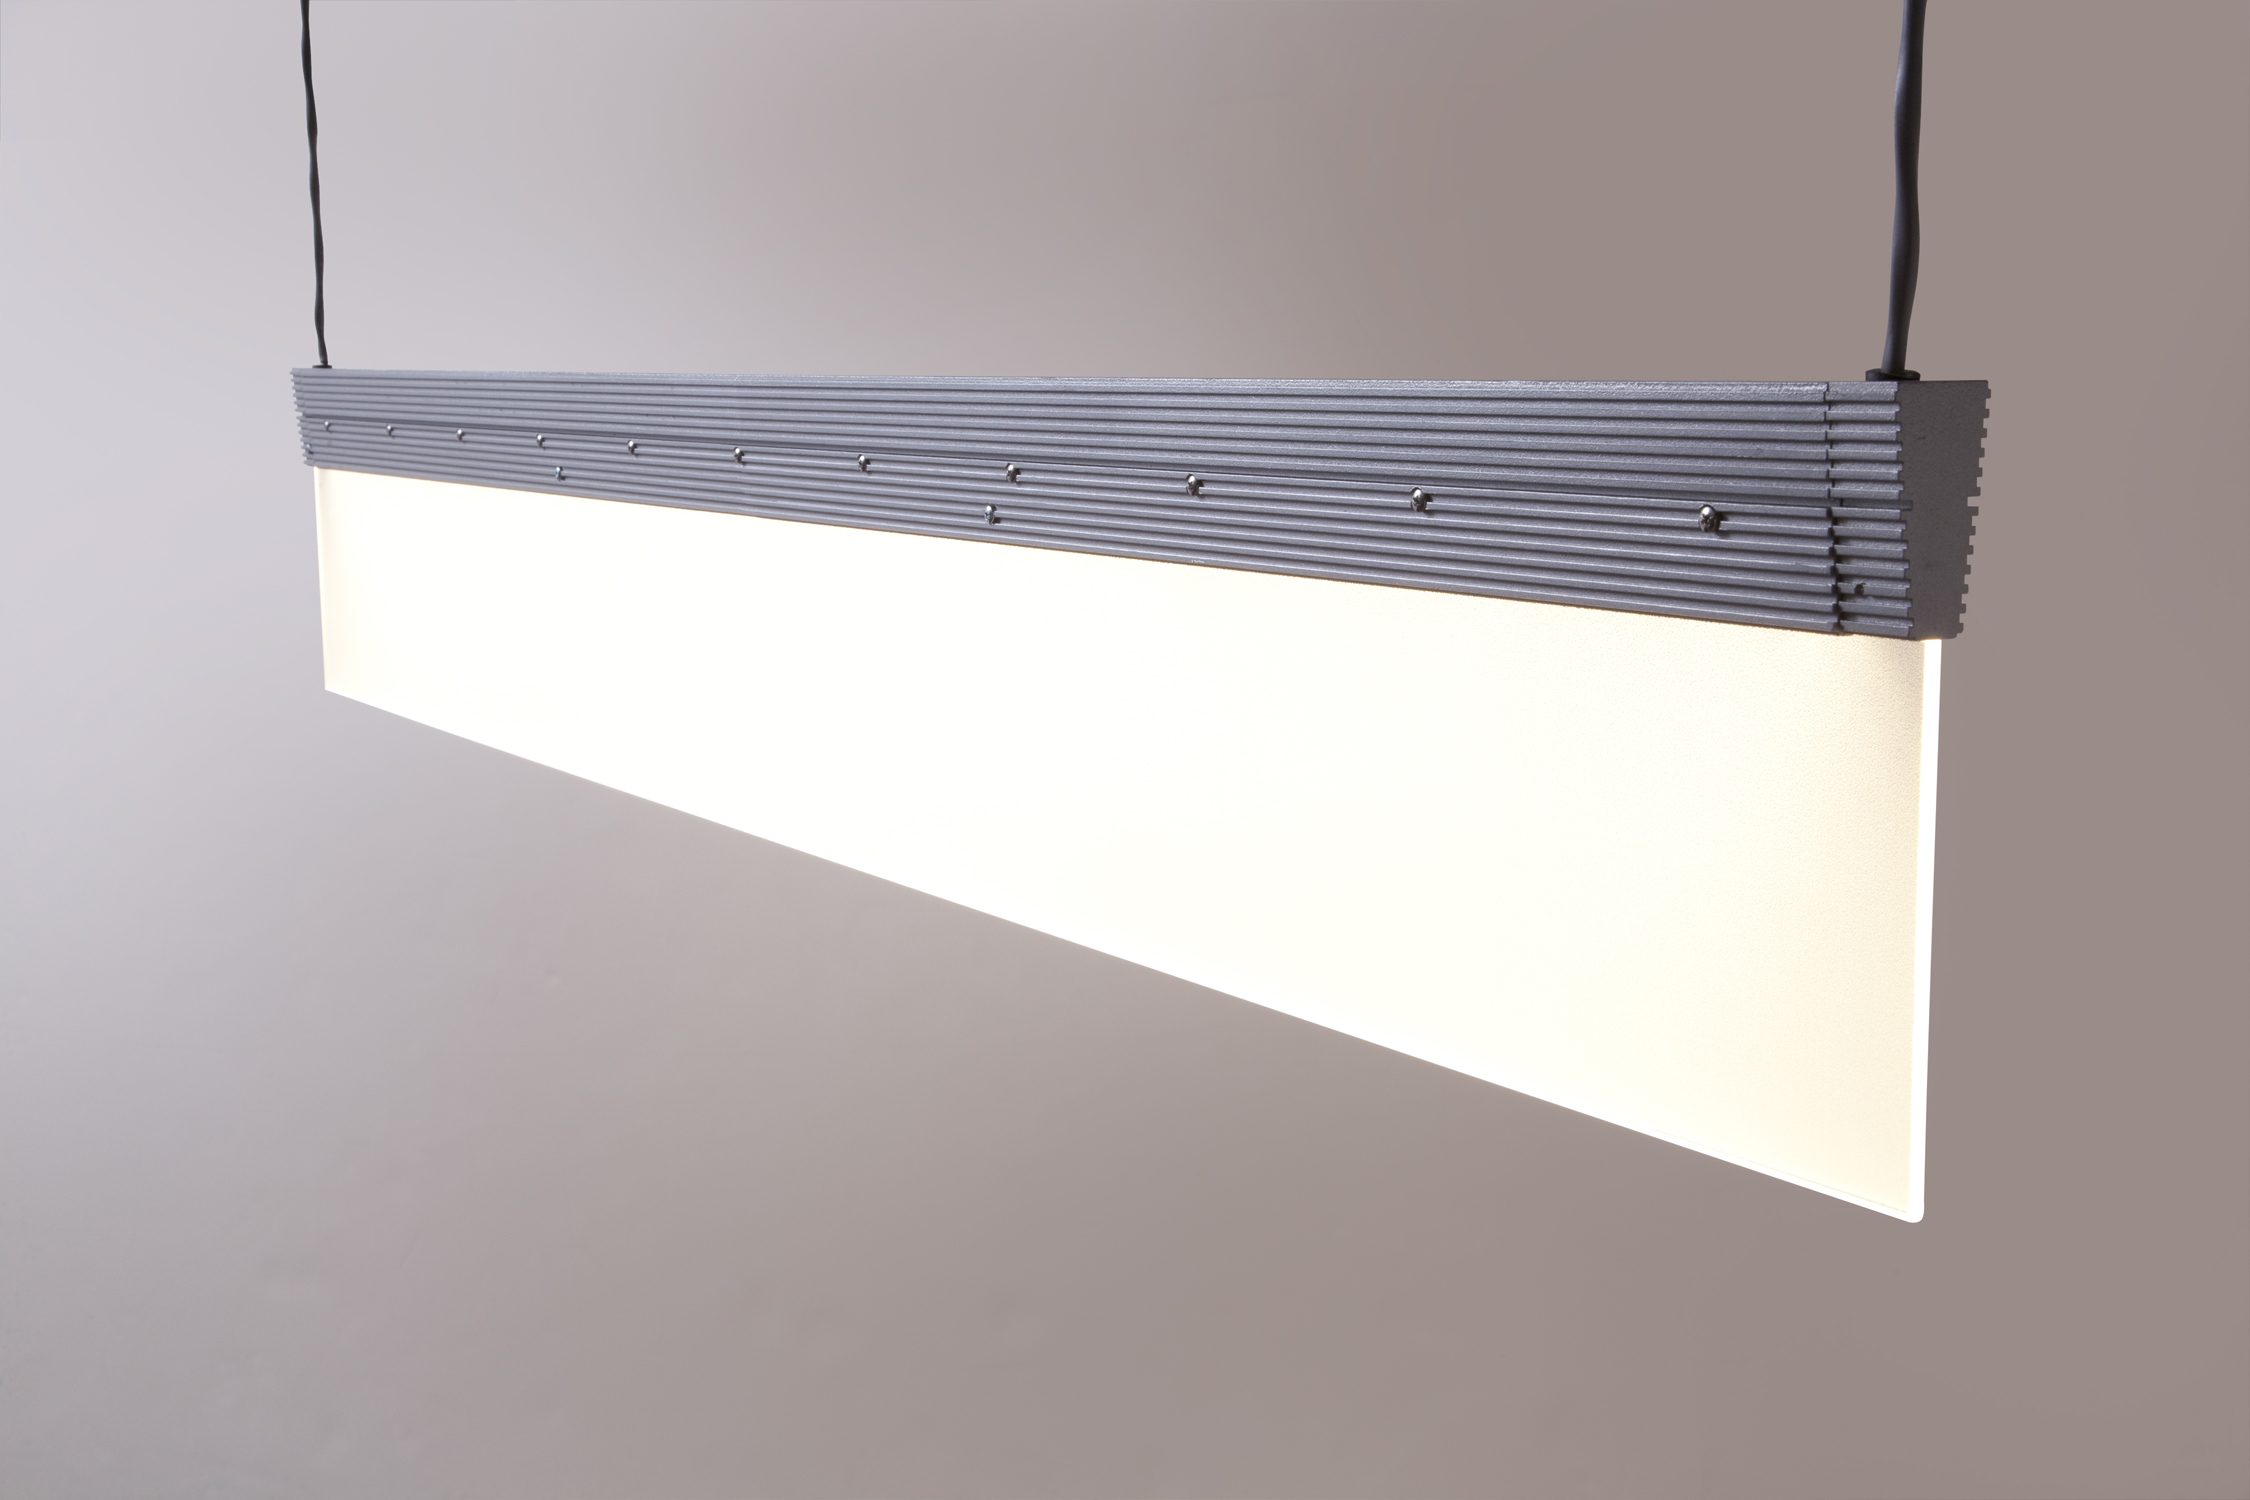 new commercial lighting options promise